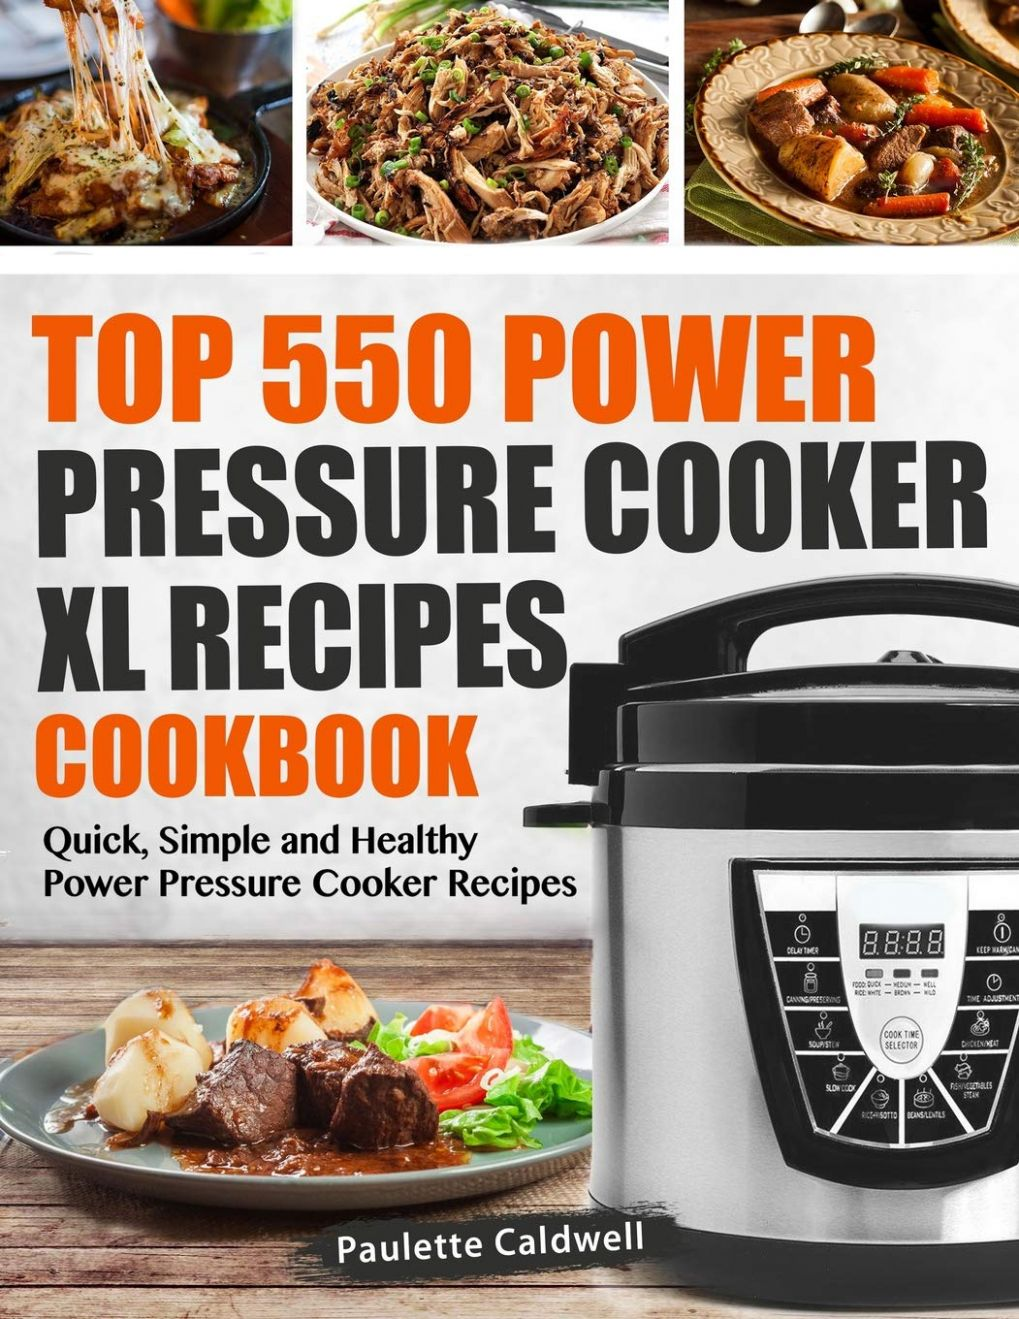 Top 10 Power Pressure Cooker XL Recipes Cookbook: Quick, Simple ..